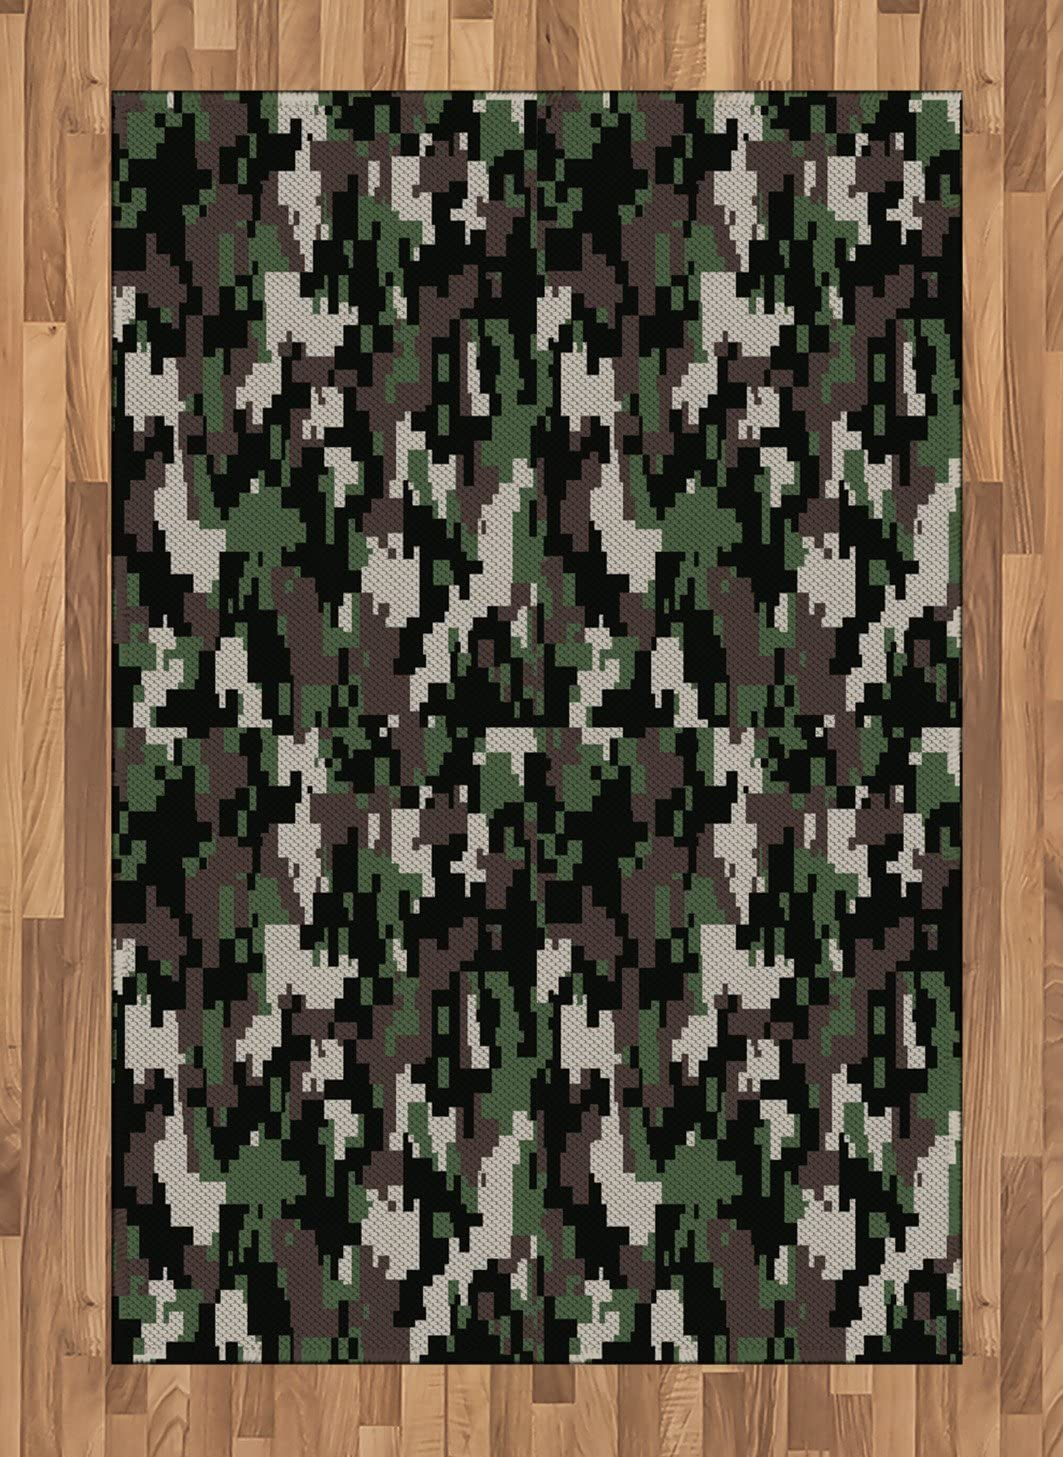 Ambesonne Camo Area Rug, Pixelated Pattern Digital Effect Modern Conceptual Camouflage Texture, Flat Woven Accent Rug for Living Room Bedroom Dining Room, 4' X 5.7', Army Green Beige Brown